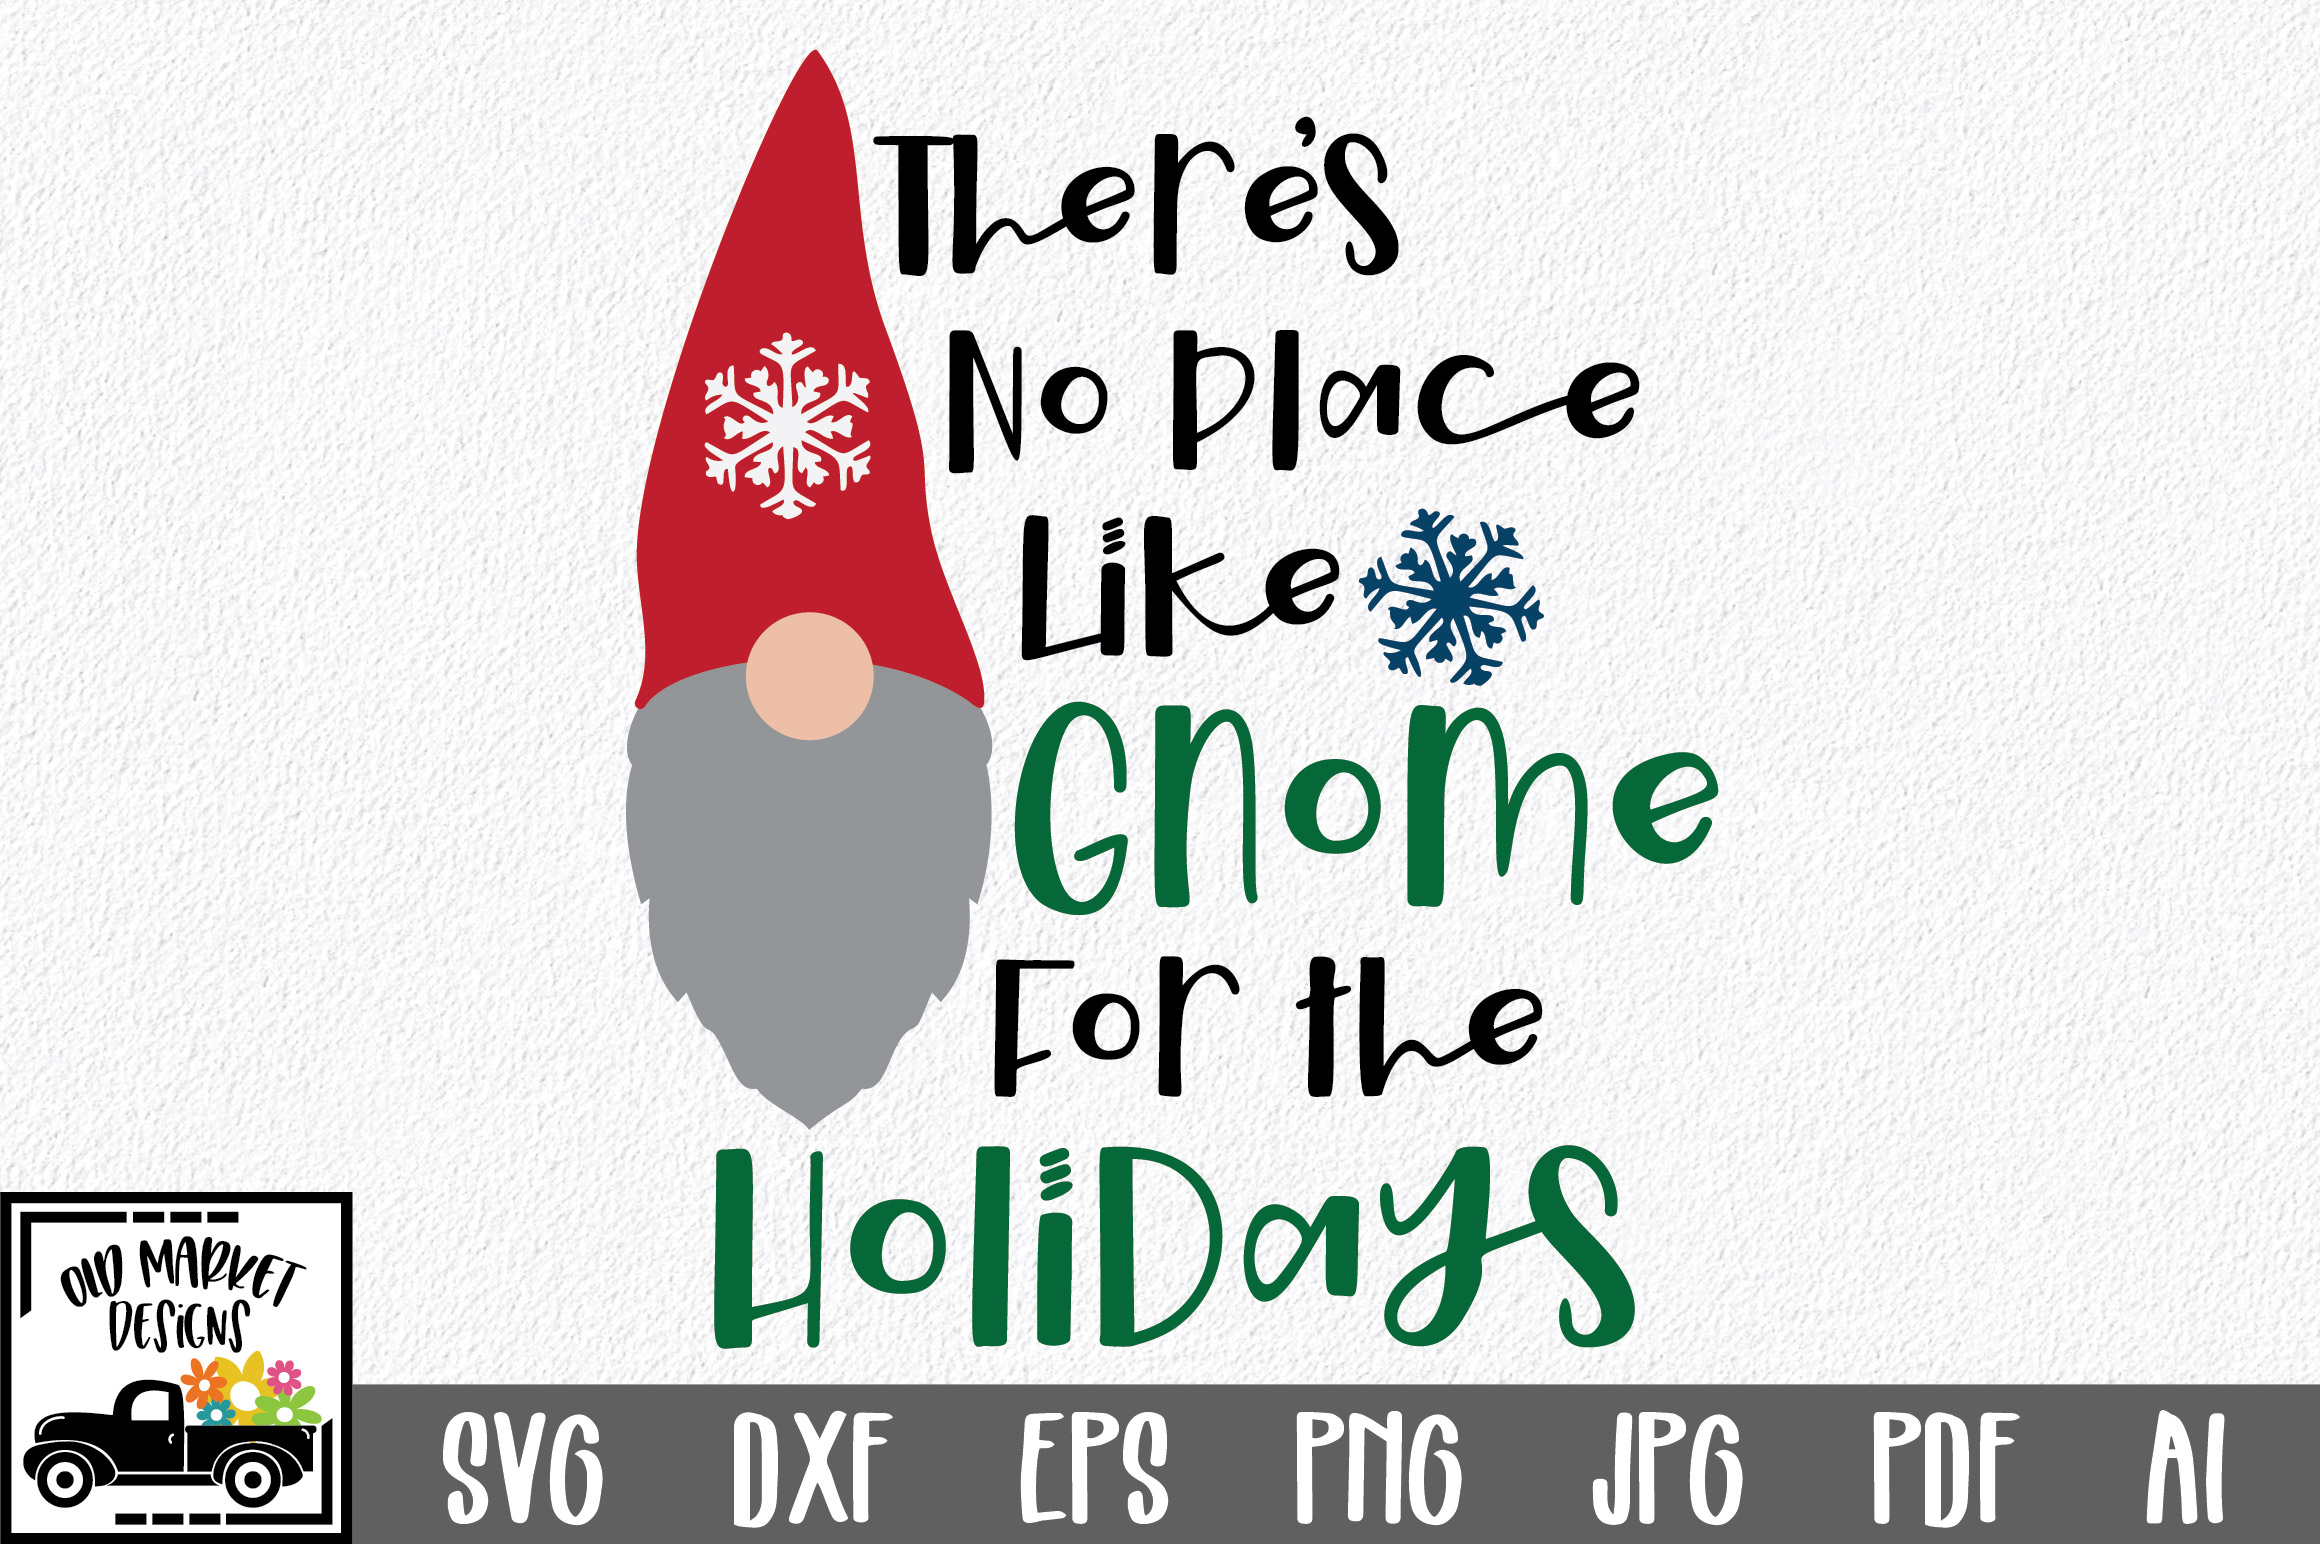 Download Free Gnome For The Holidays Svg Cut File Graphic By Oldmarketdesigns for Cricut Explore, Silhouette and other cutting machines.